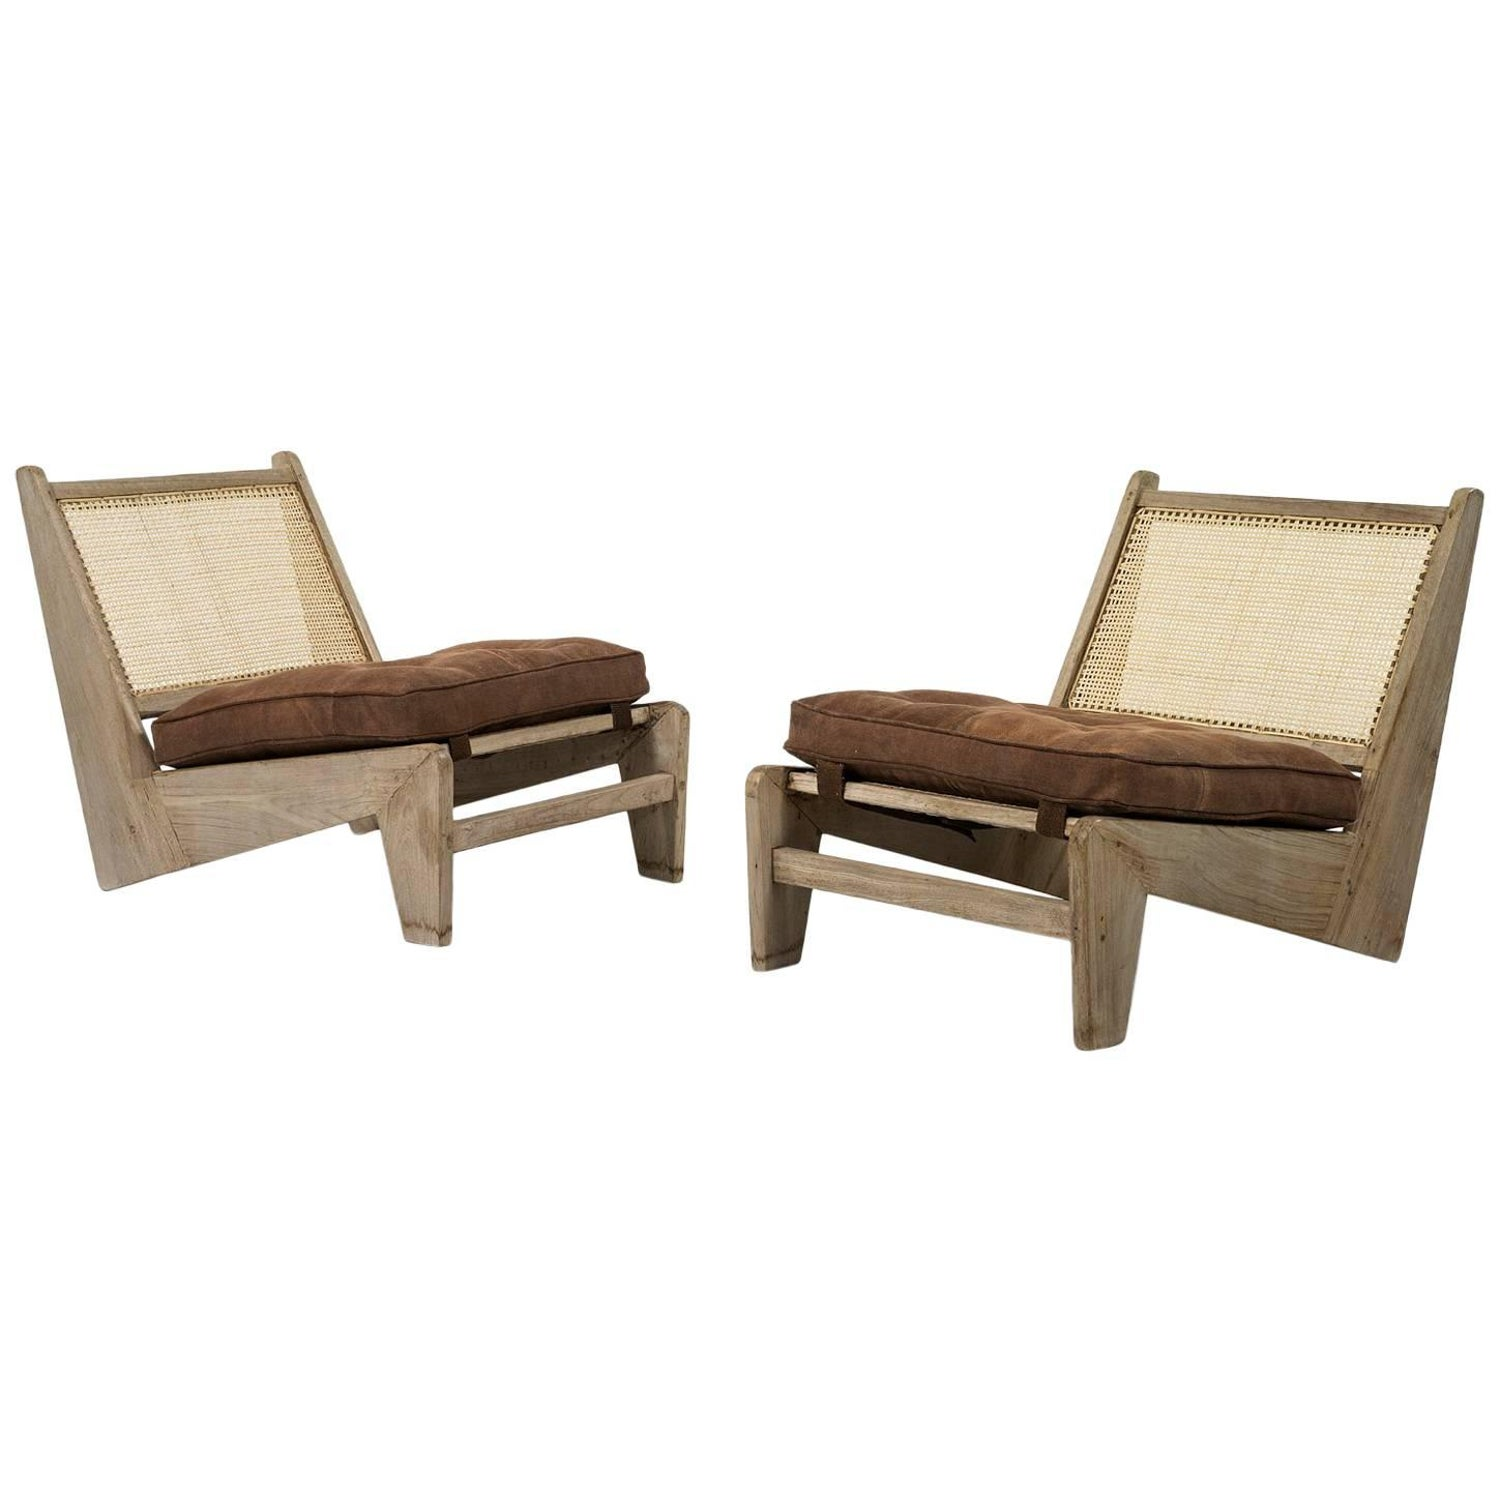 Pierre Jeanneret Folding Chairs PJ SI 61 A Chandigarh Teak and